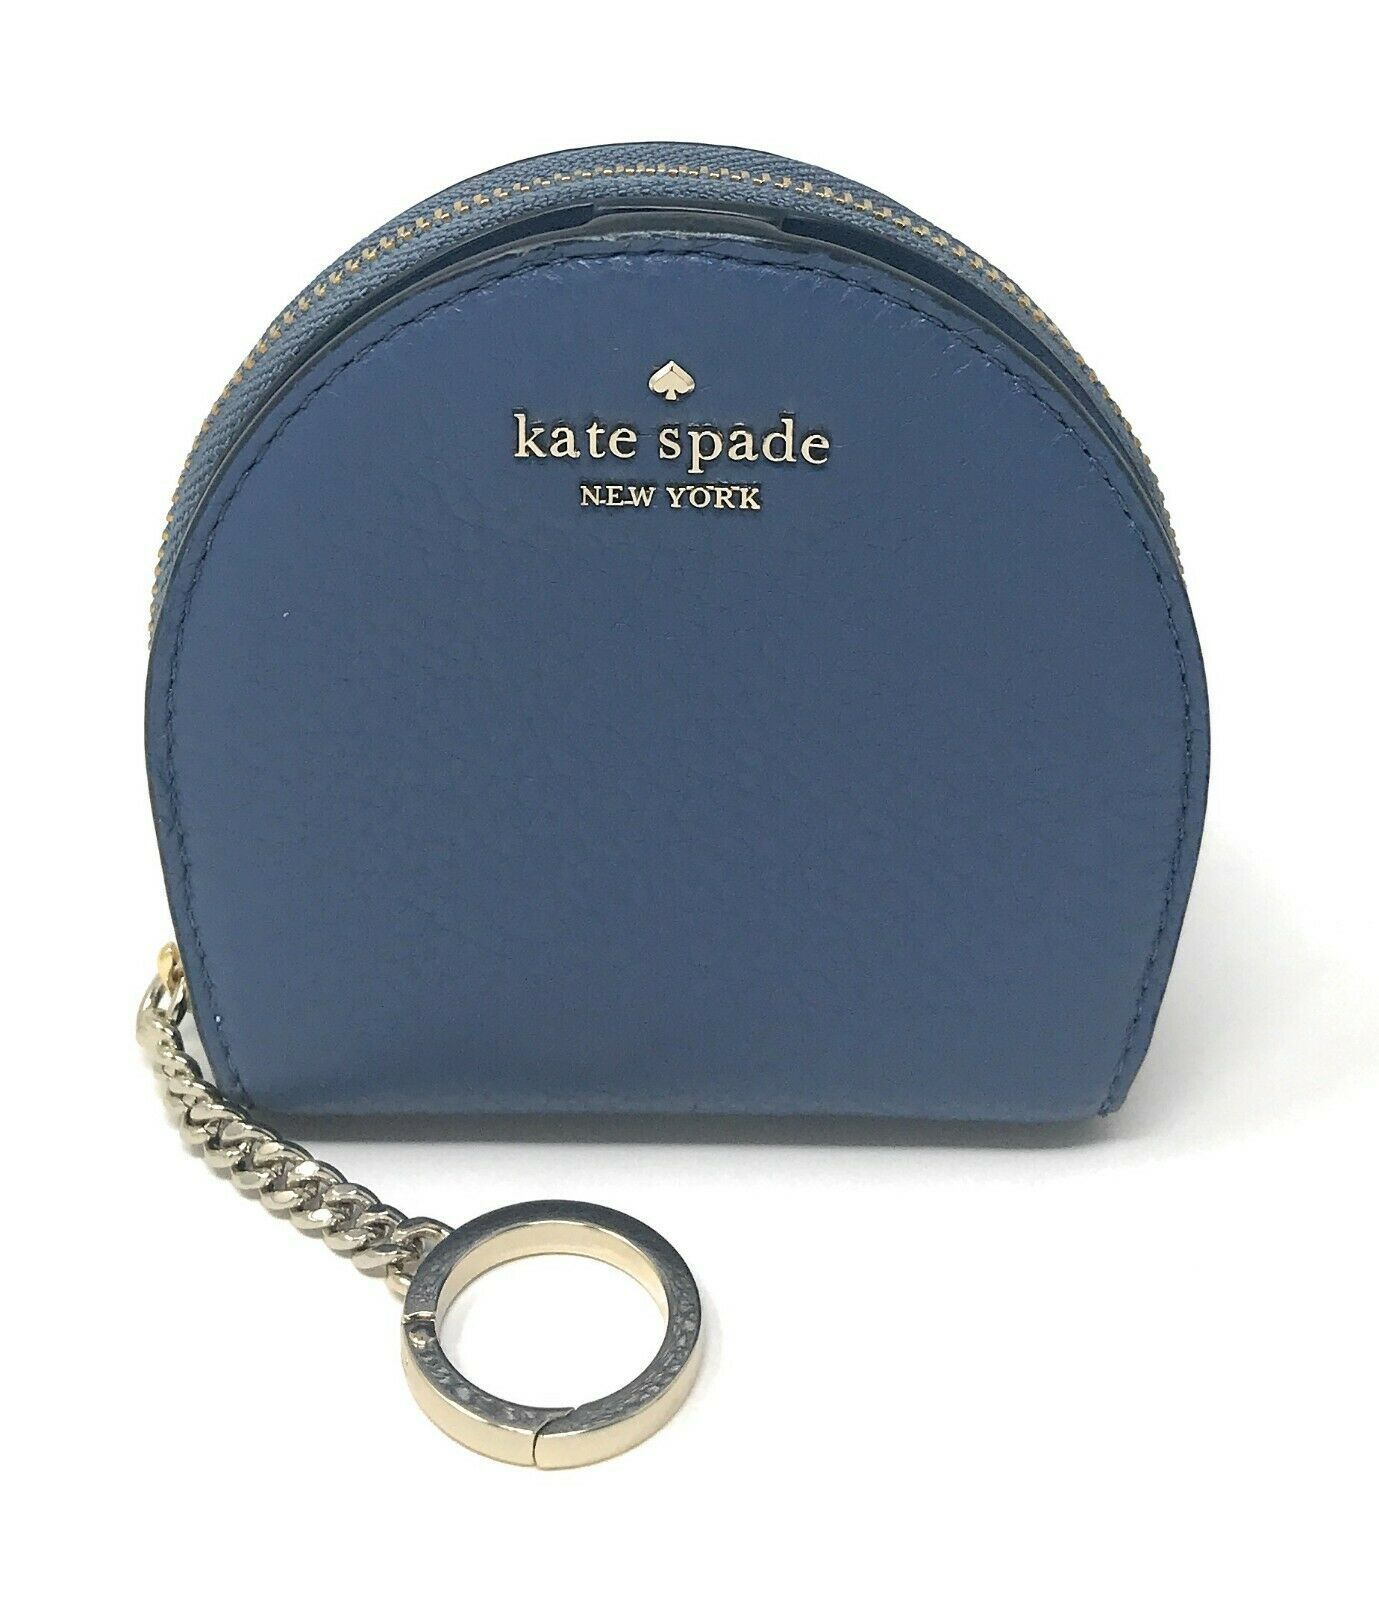 Kate Spade Jackson Half Moon Blue Wallet Coin Key Chain WLRU5465 $99